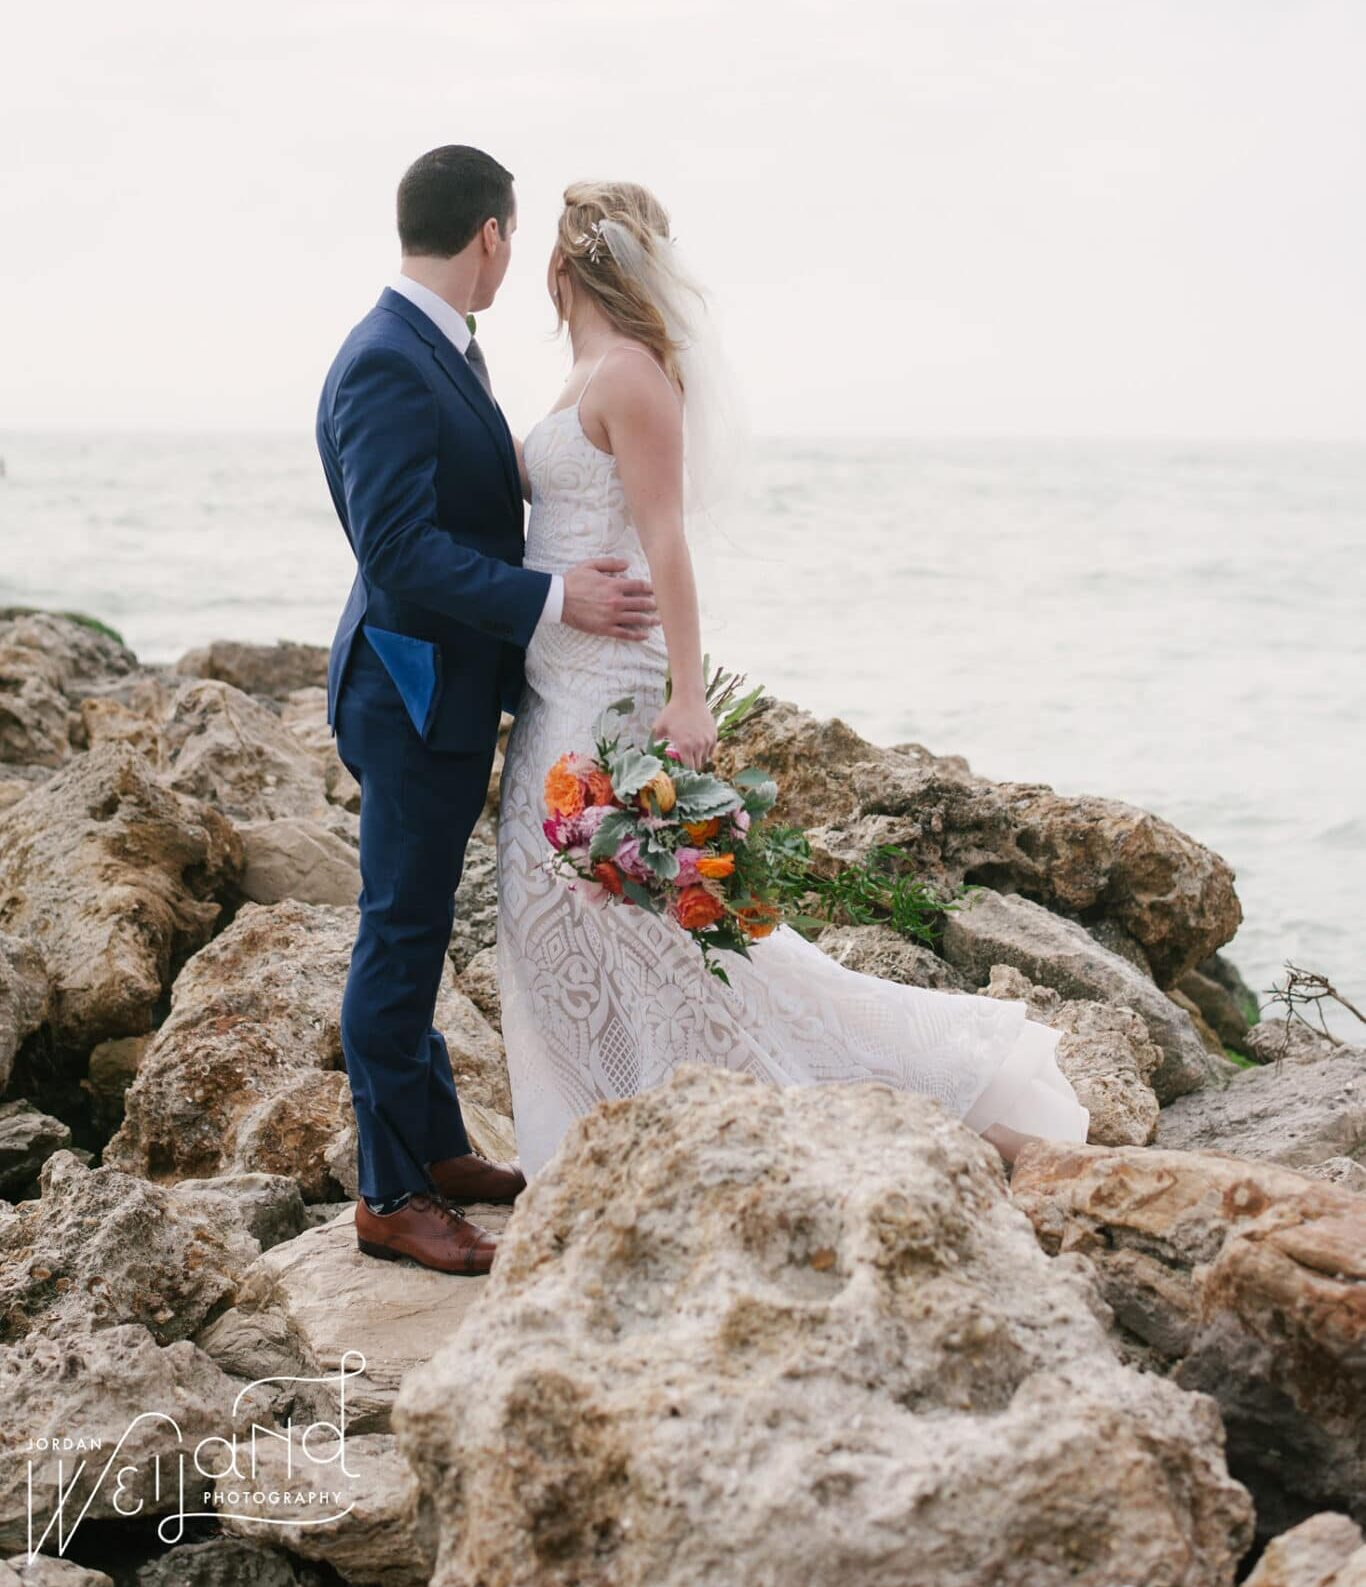 Kiss of Perfection, bride and groom standing on rocks overlooking water